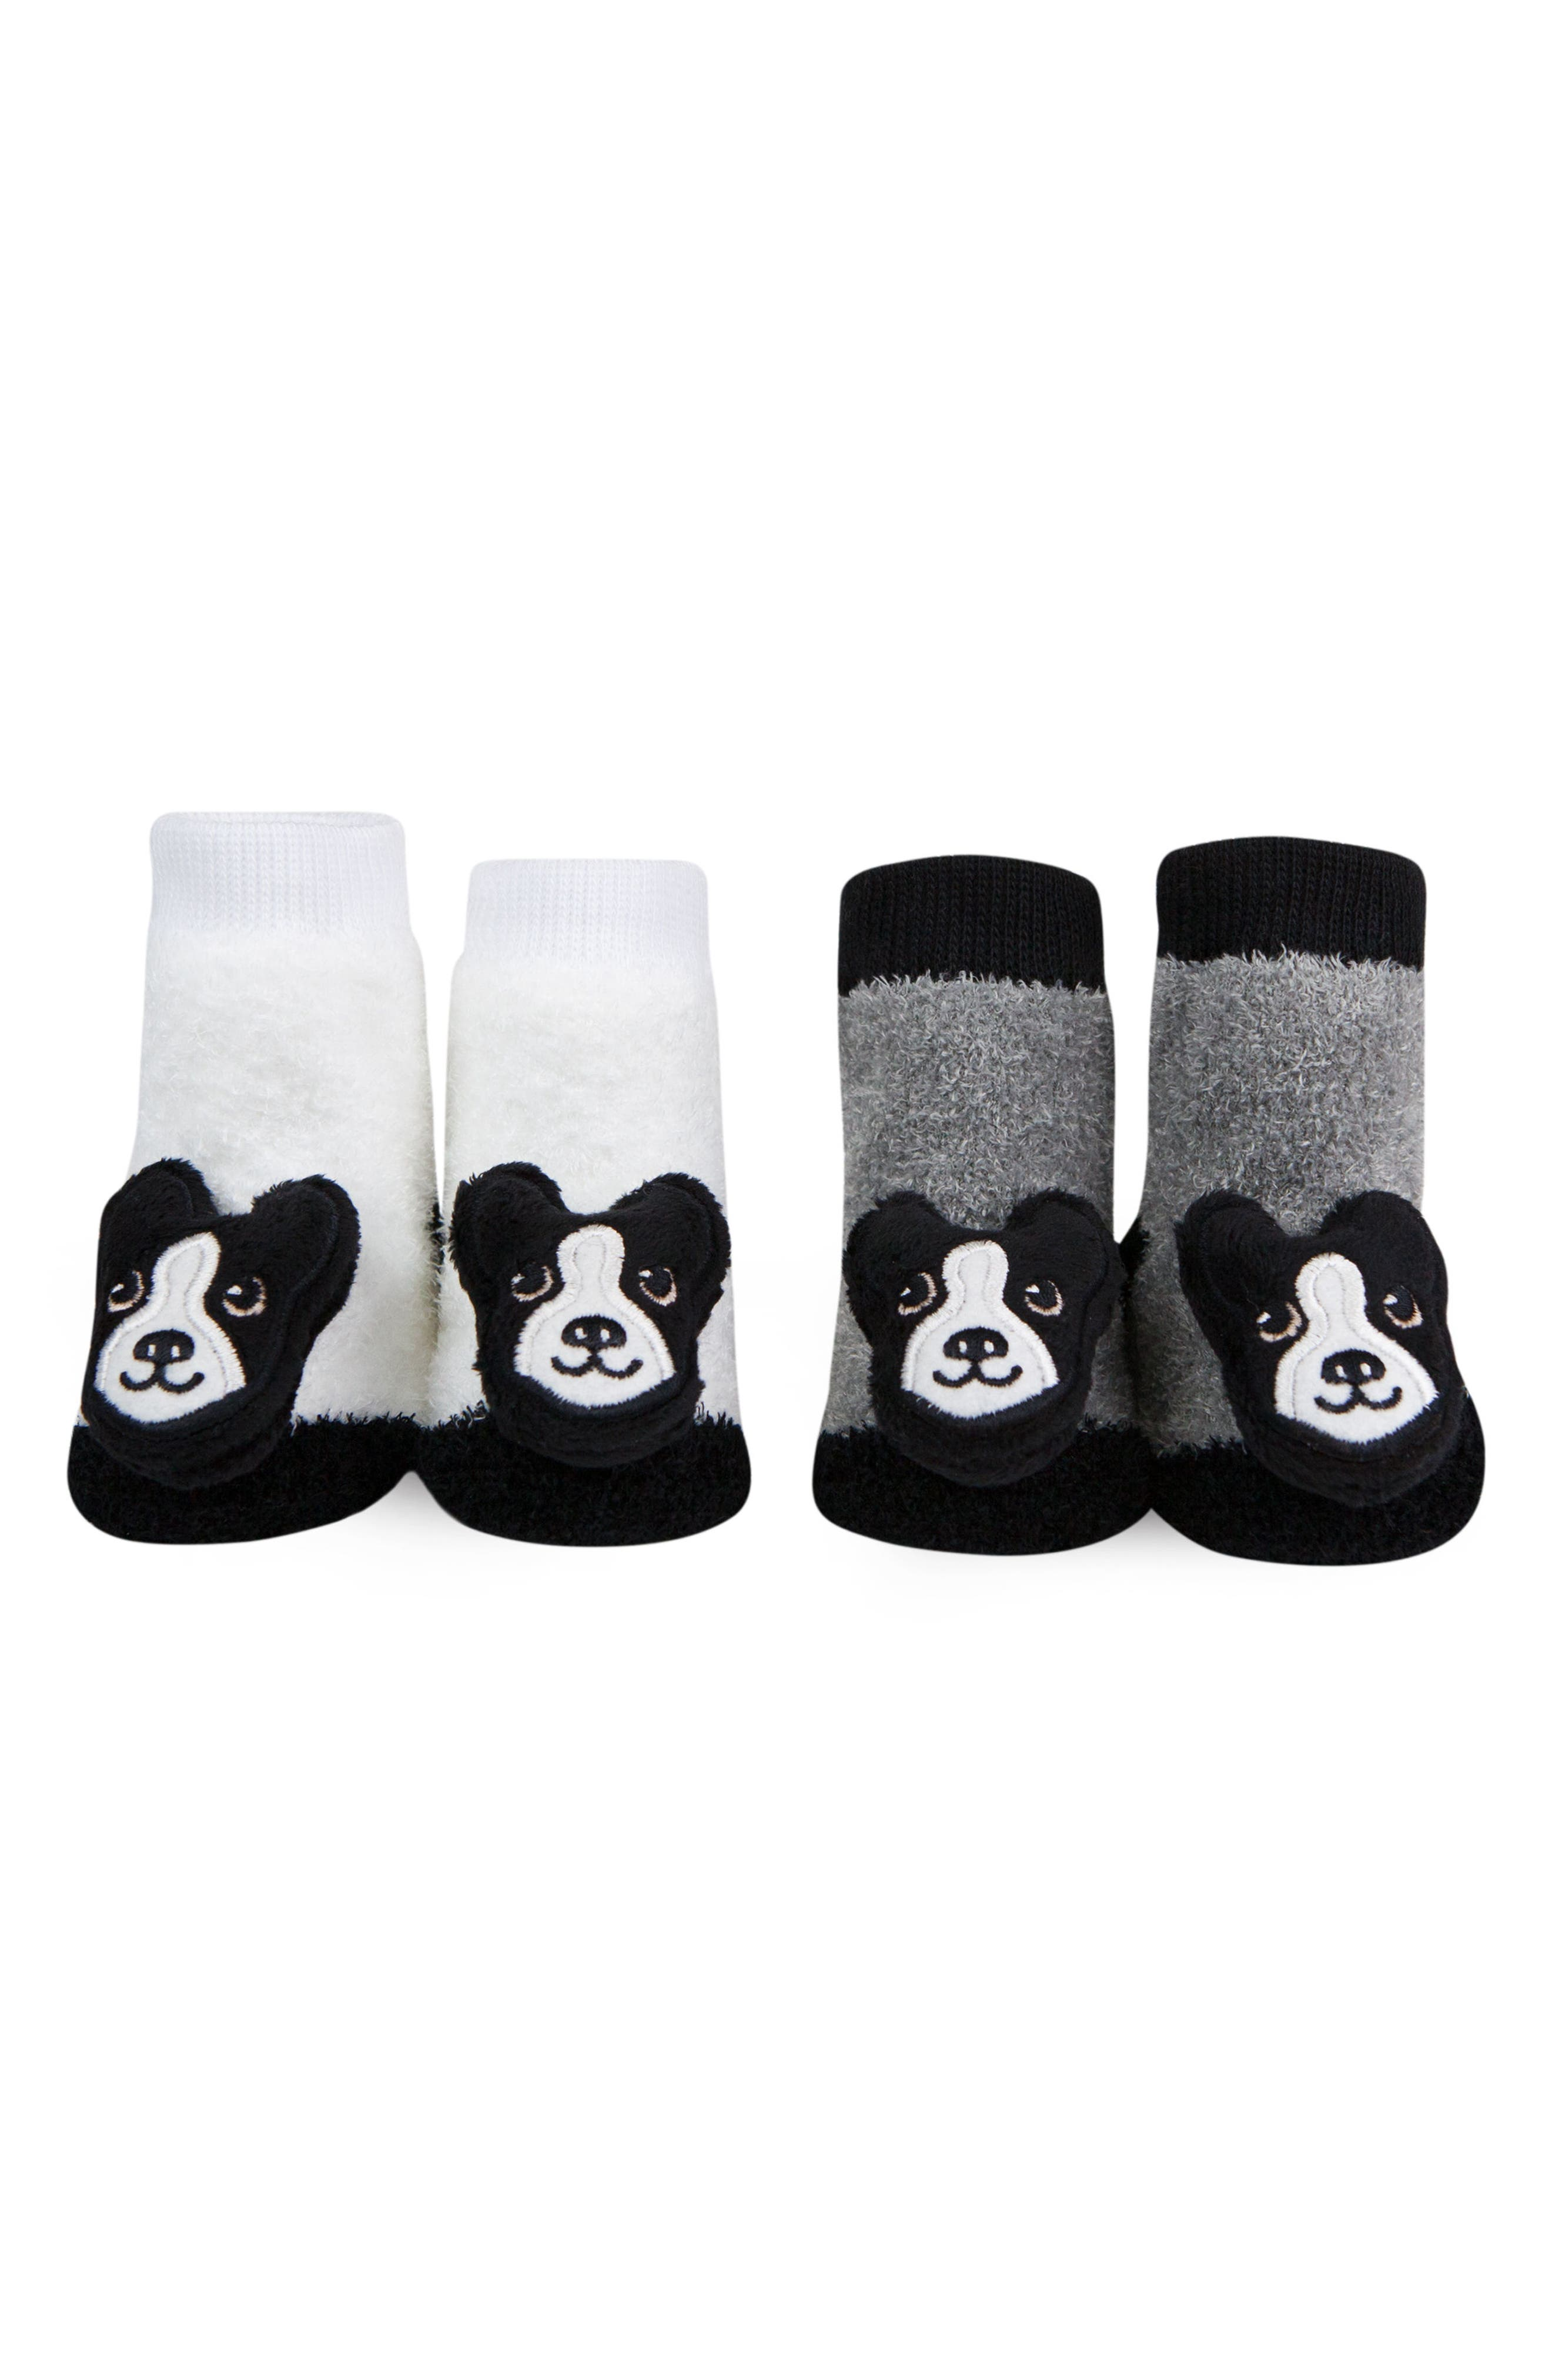 2-Pack Boston Terrier Rattle Socks,                         Main,                         color, Black/ White